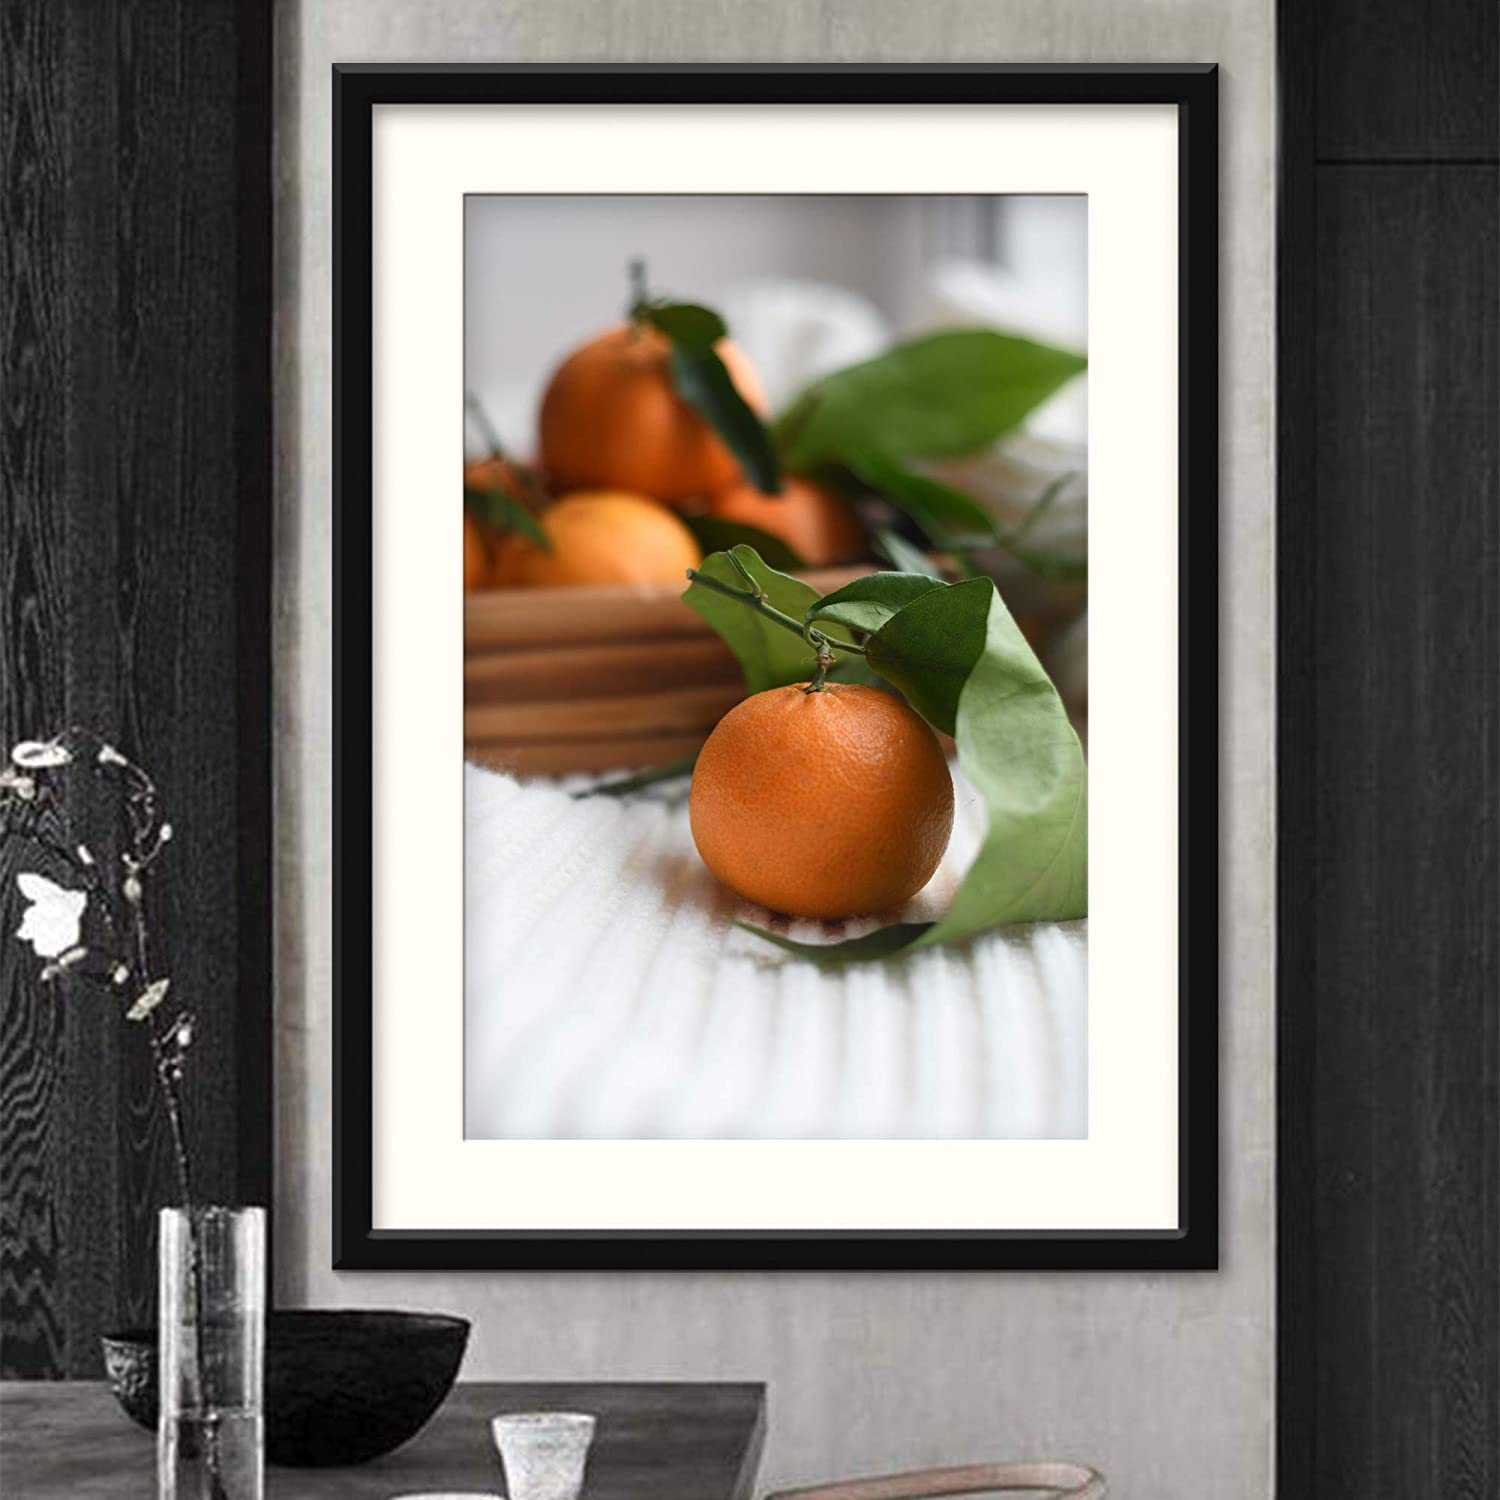 H5print Framed Canvas Wall Art Fruits II Farmhouse/Country Food Fun Kitchen Multicolor Photography Spices Artwork Black Frame - 23x31 inches